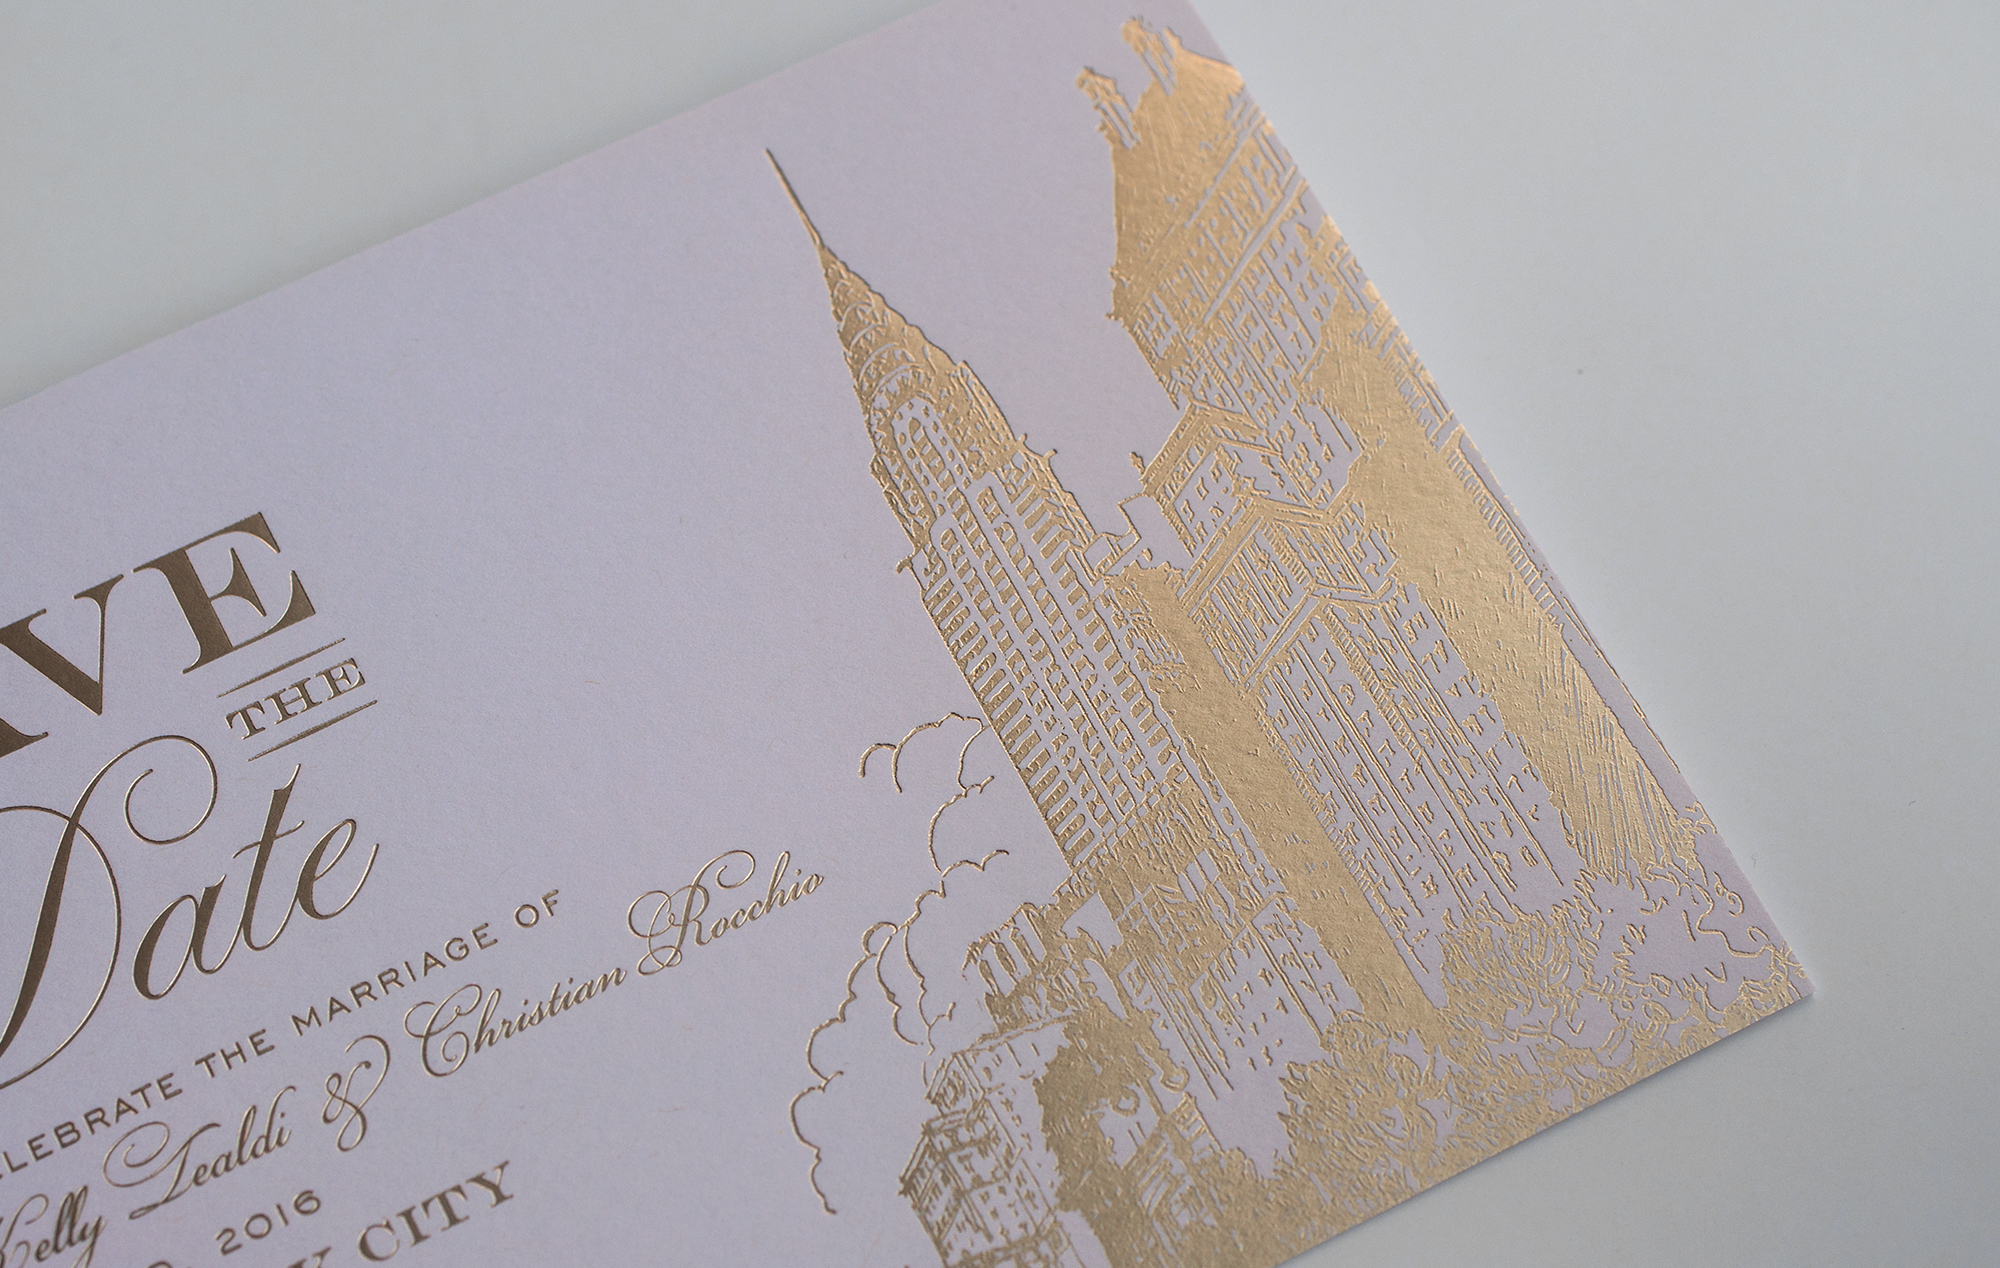 Chrysler Building printed in gold foil